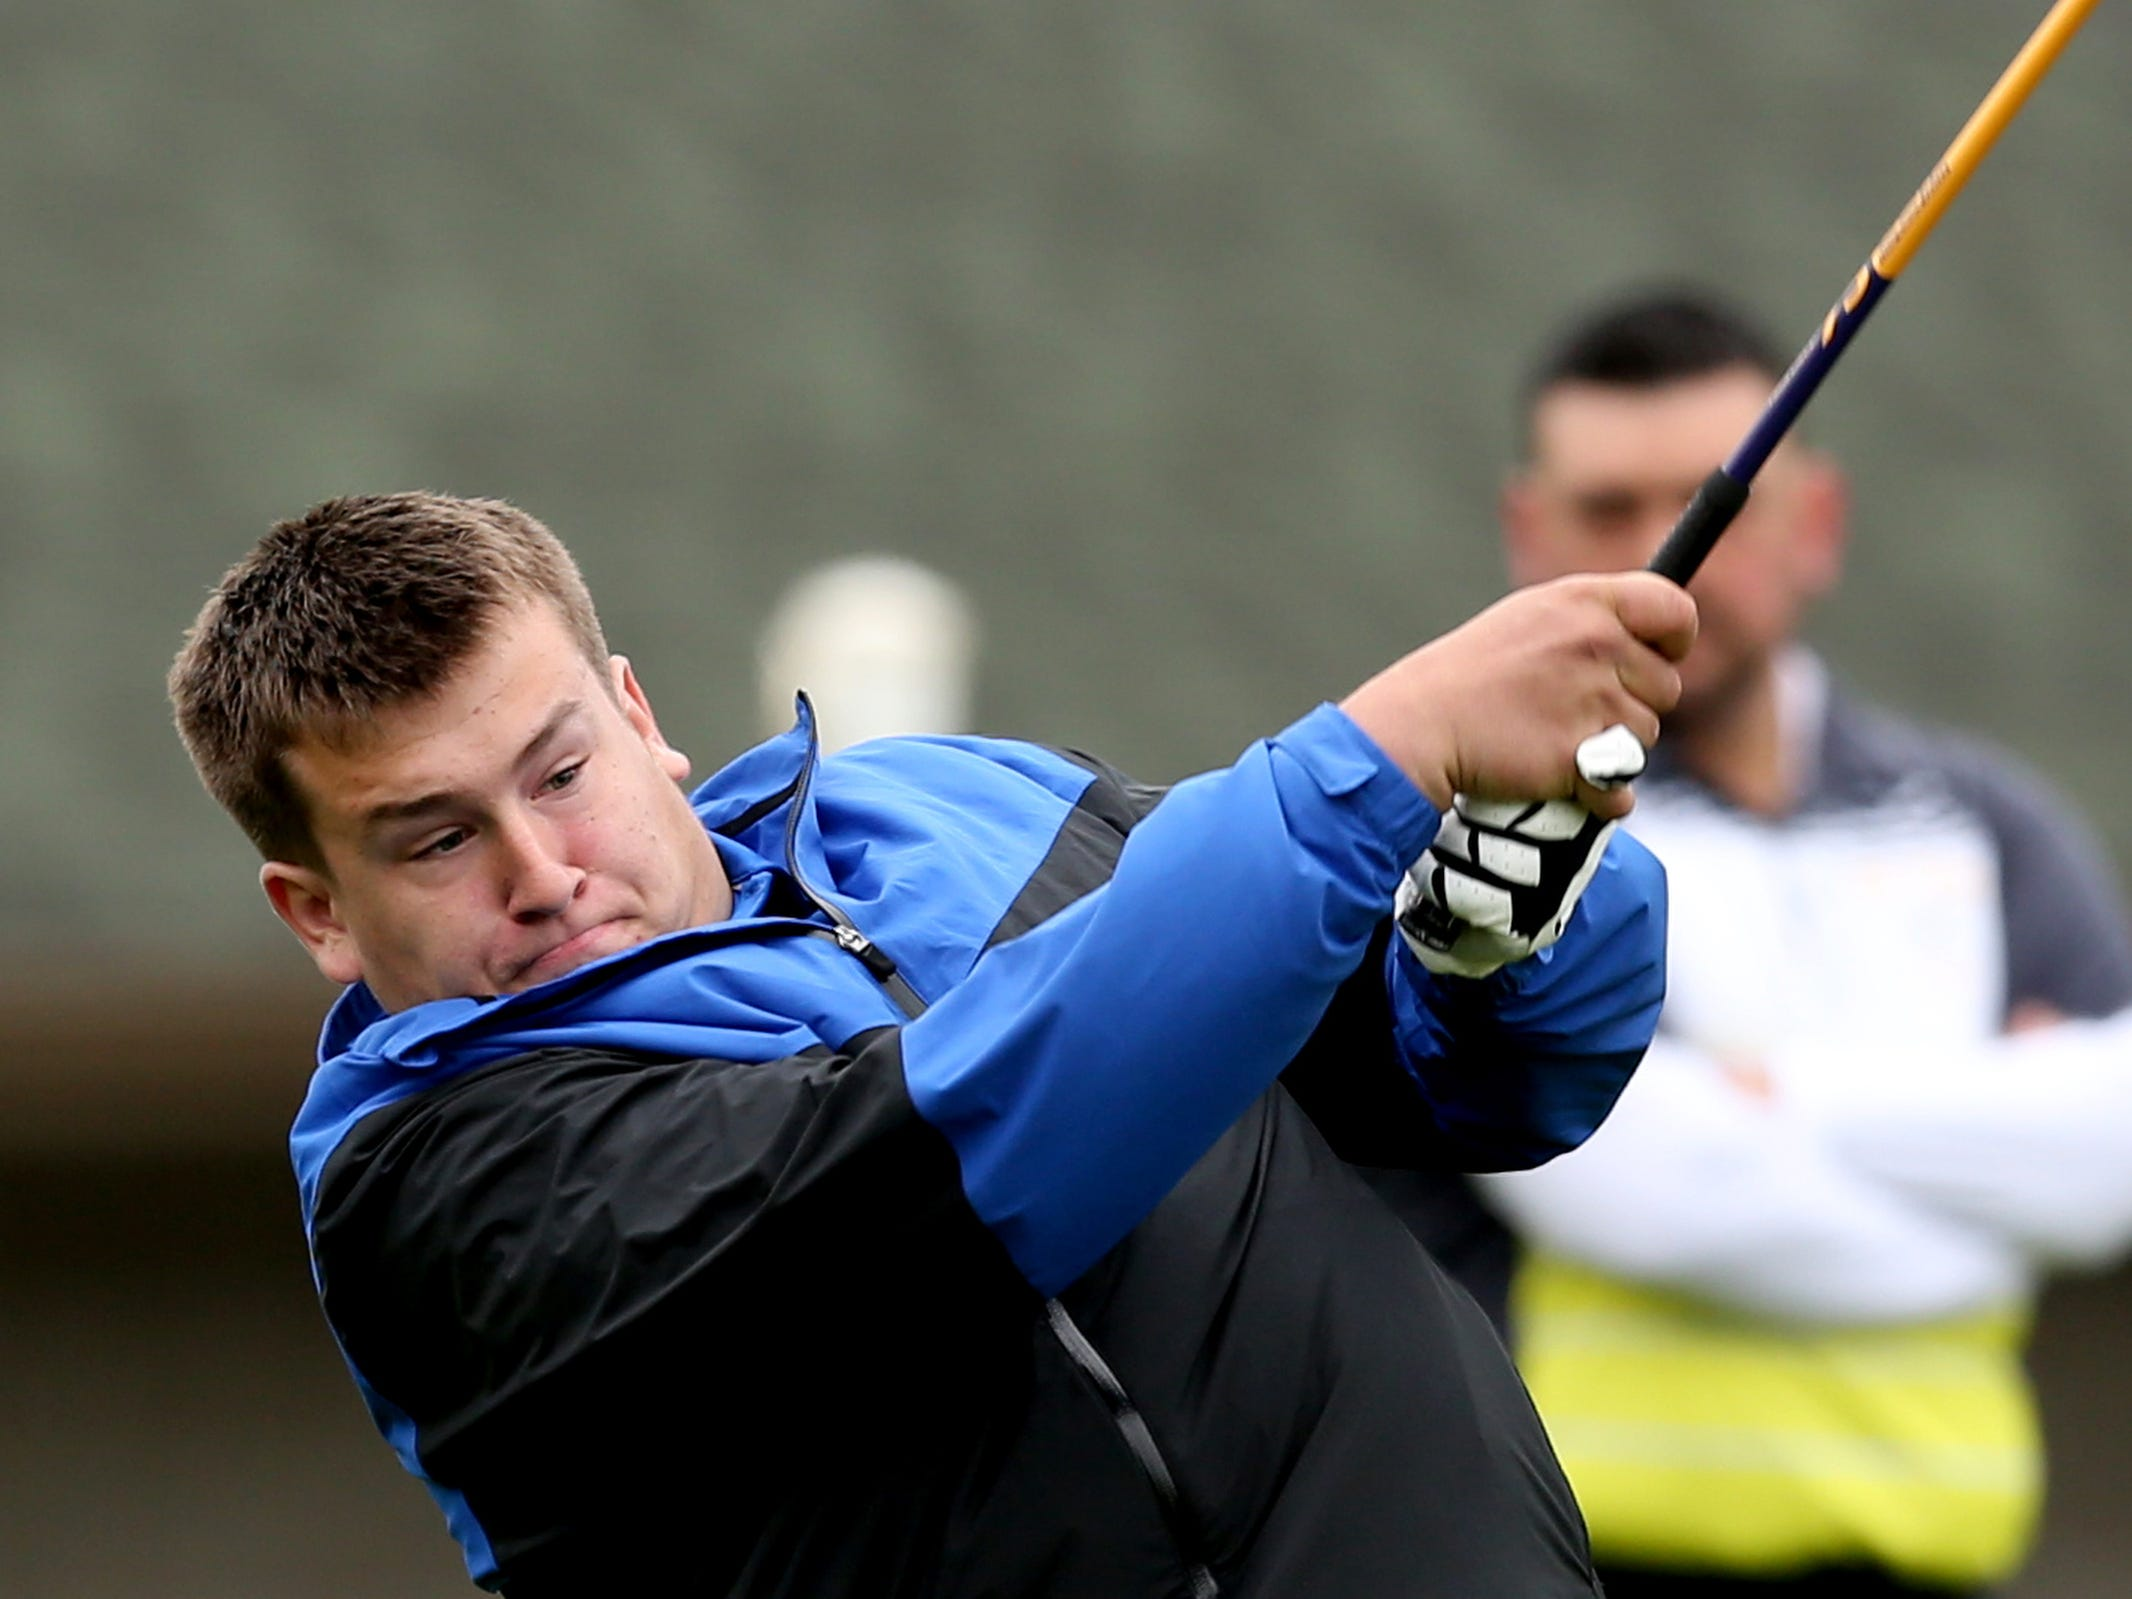 McNary's Nathan Young tees off during a Mountain Valley Conference league high school golf match at Creekside Golf Club in Salem on April 15, 2019.